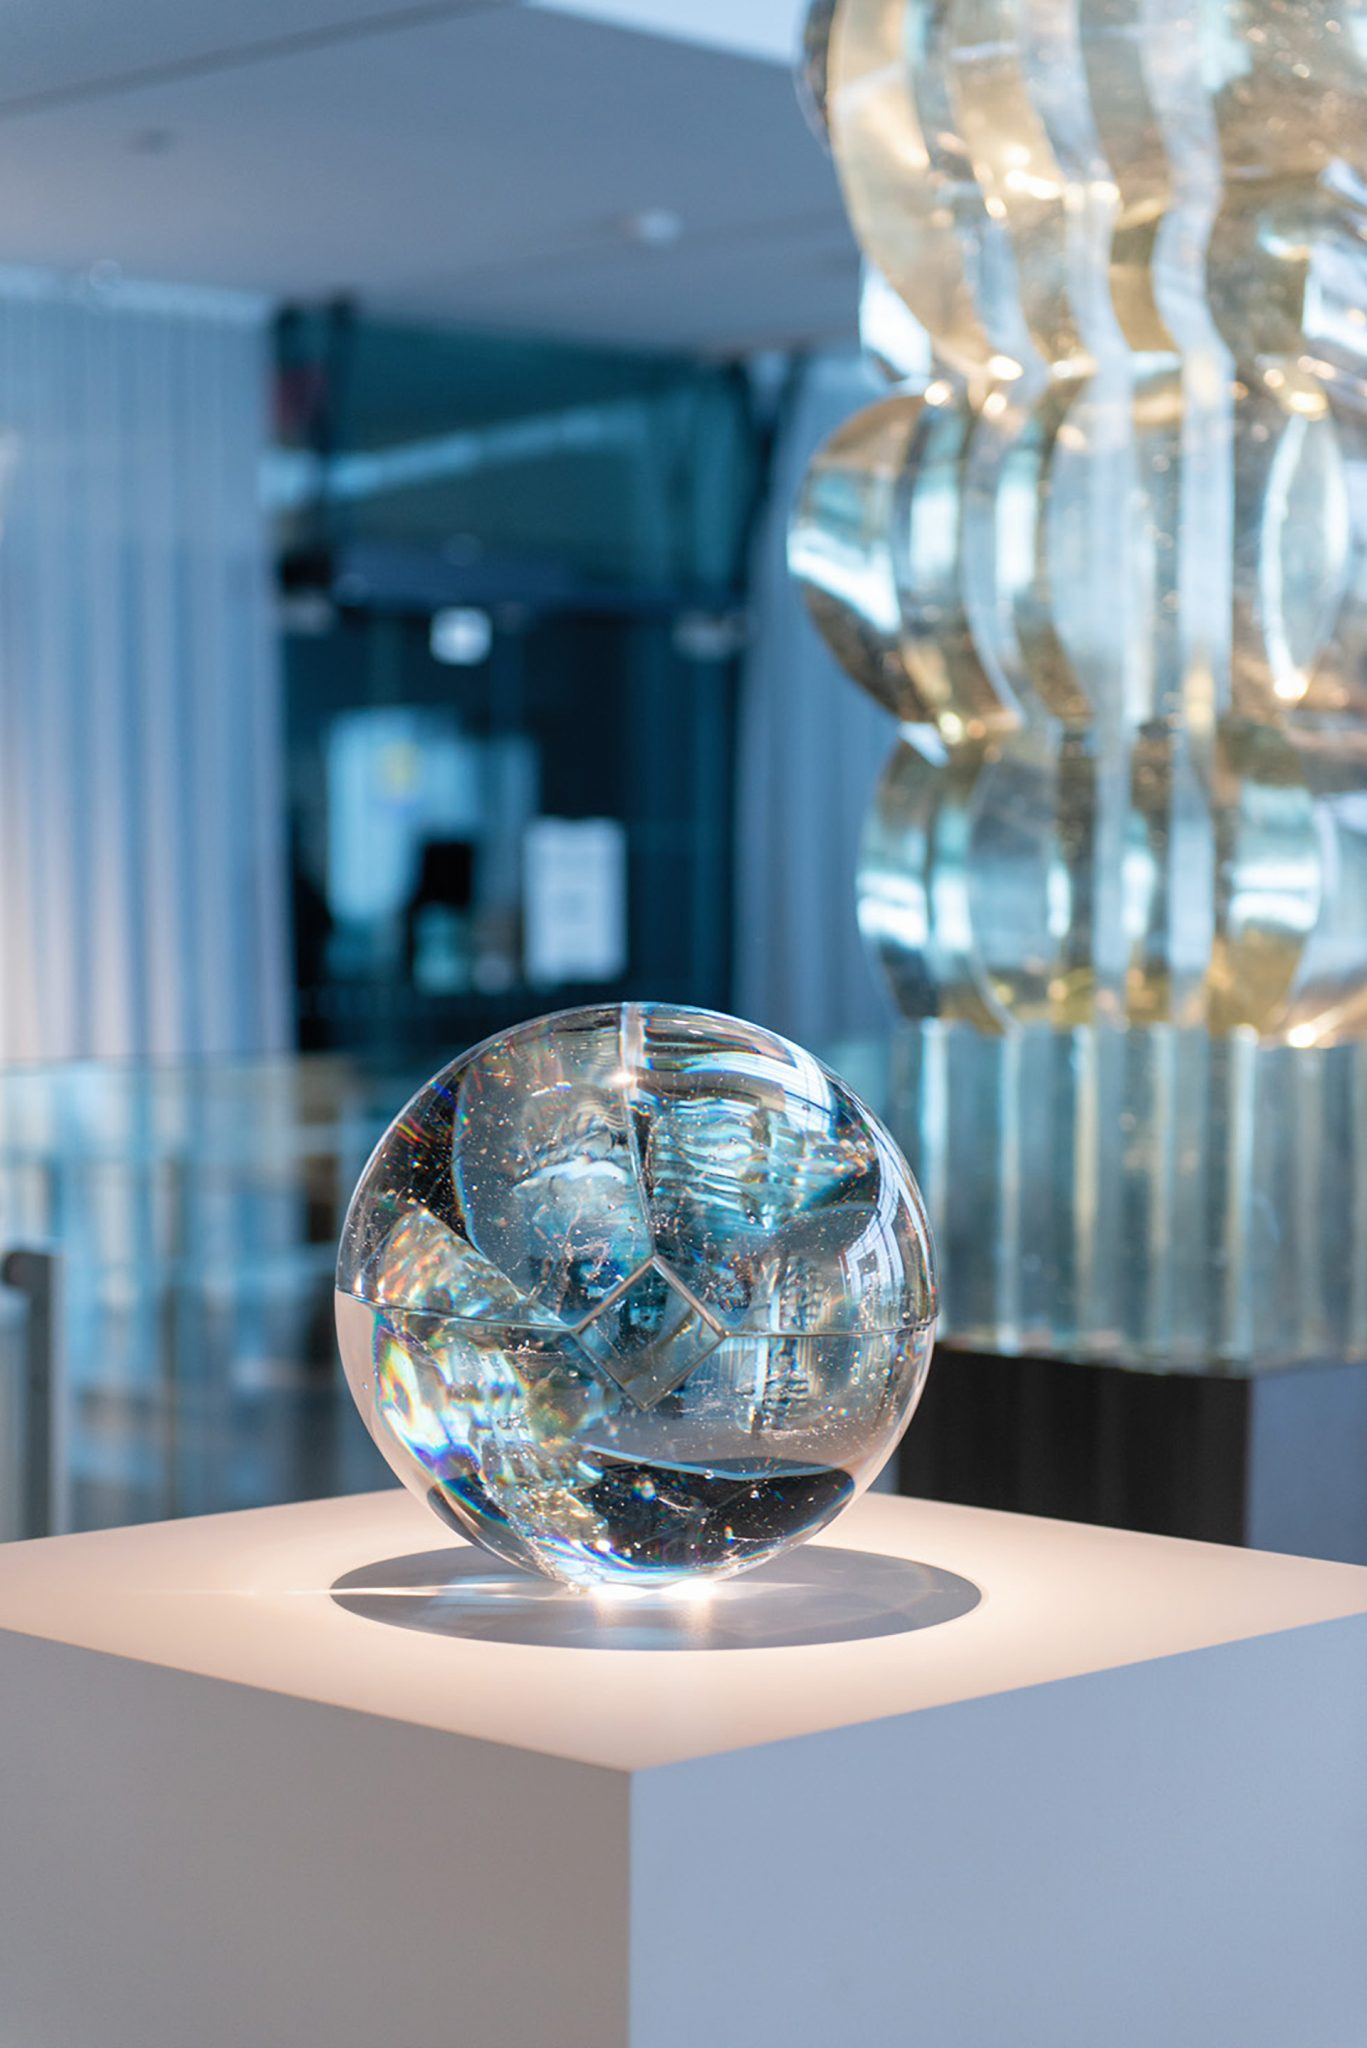 Crystal ball at the Corning Museum of Glass